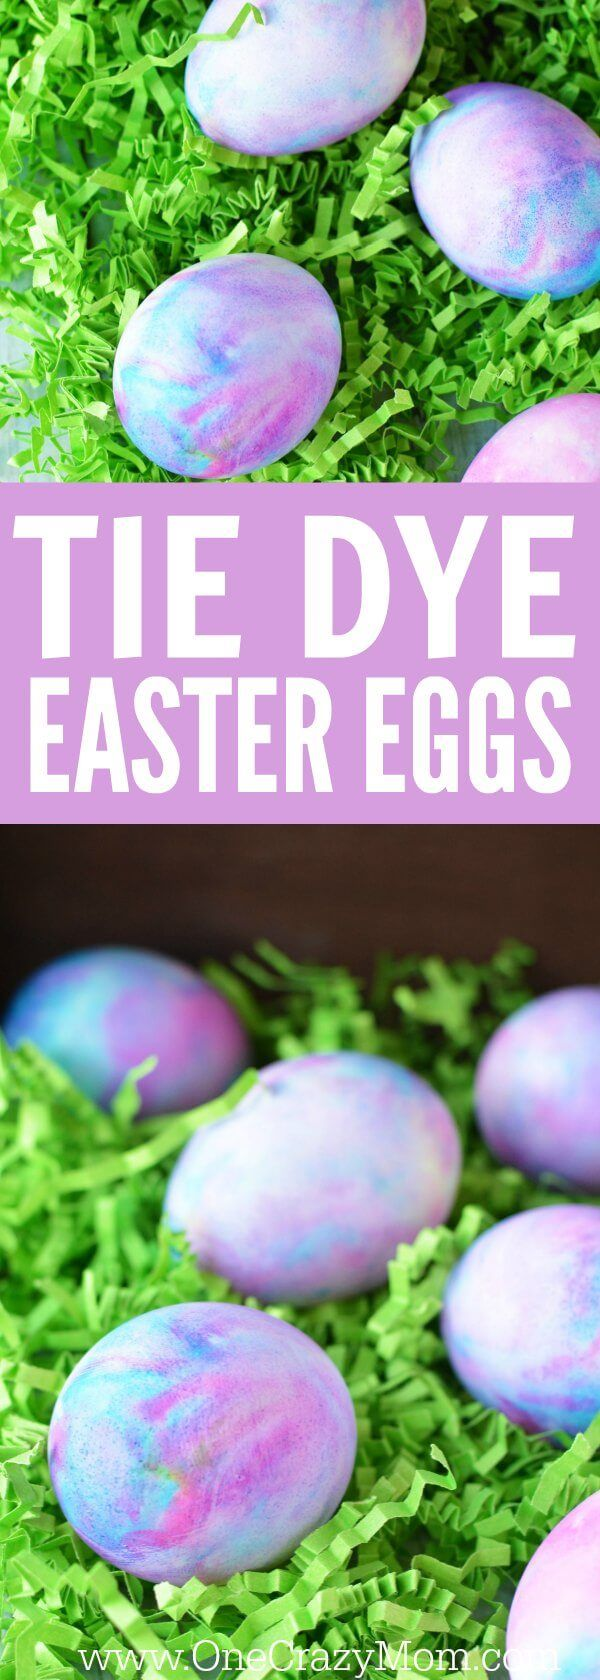 Learn how to dye Easter eggs. Shaving cream Easter eggs are so fun! Once you learn how to dye Easter eggs with shaving cream, you will see how easy it is. Try these gorgeous tie dye Easter eggs and you will love dying Easter Eggs!